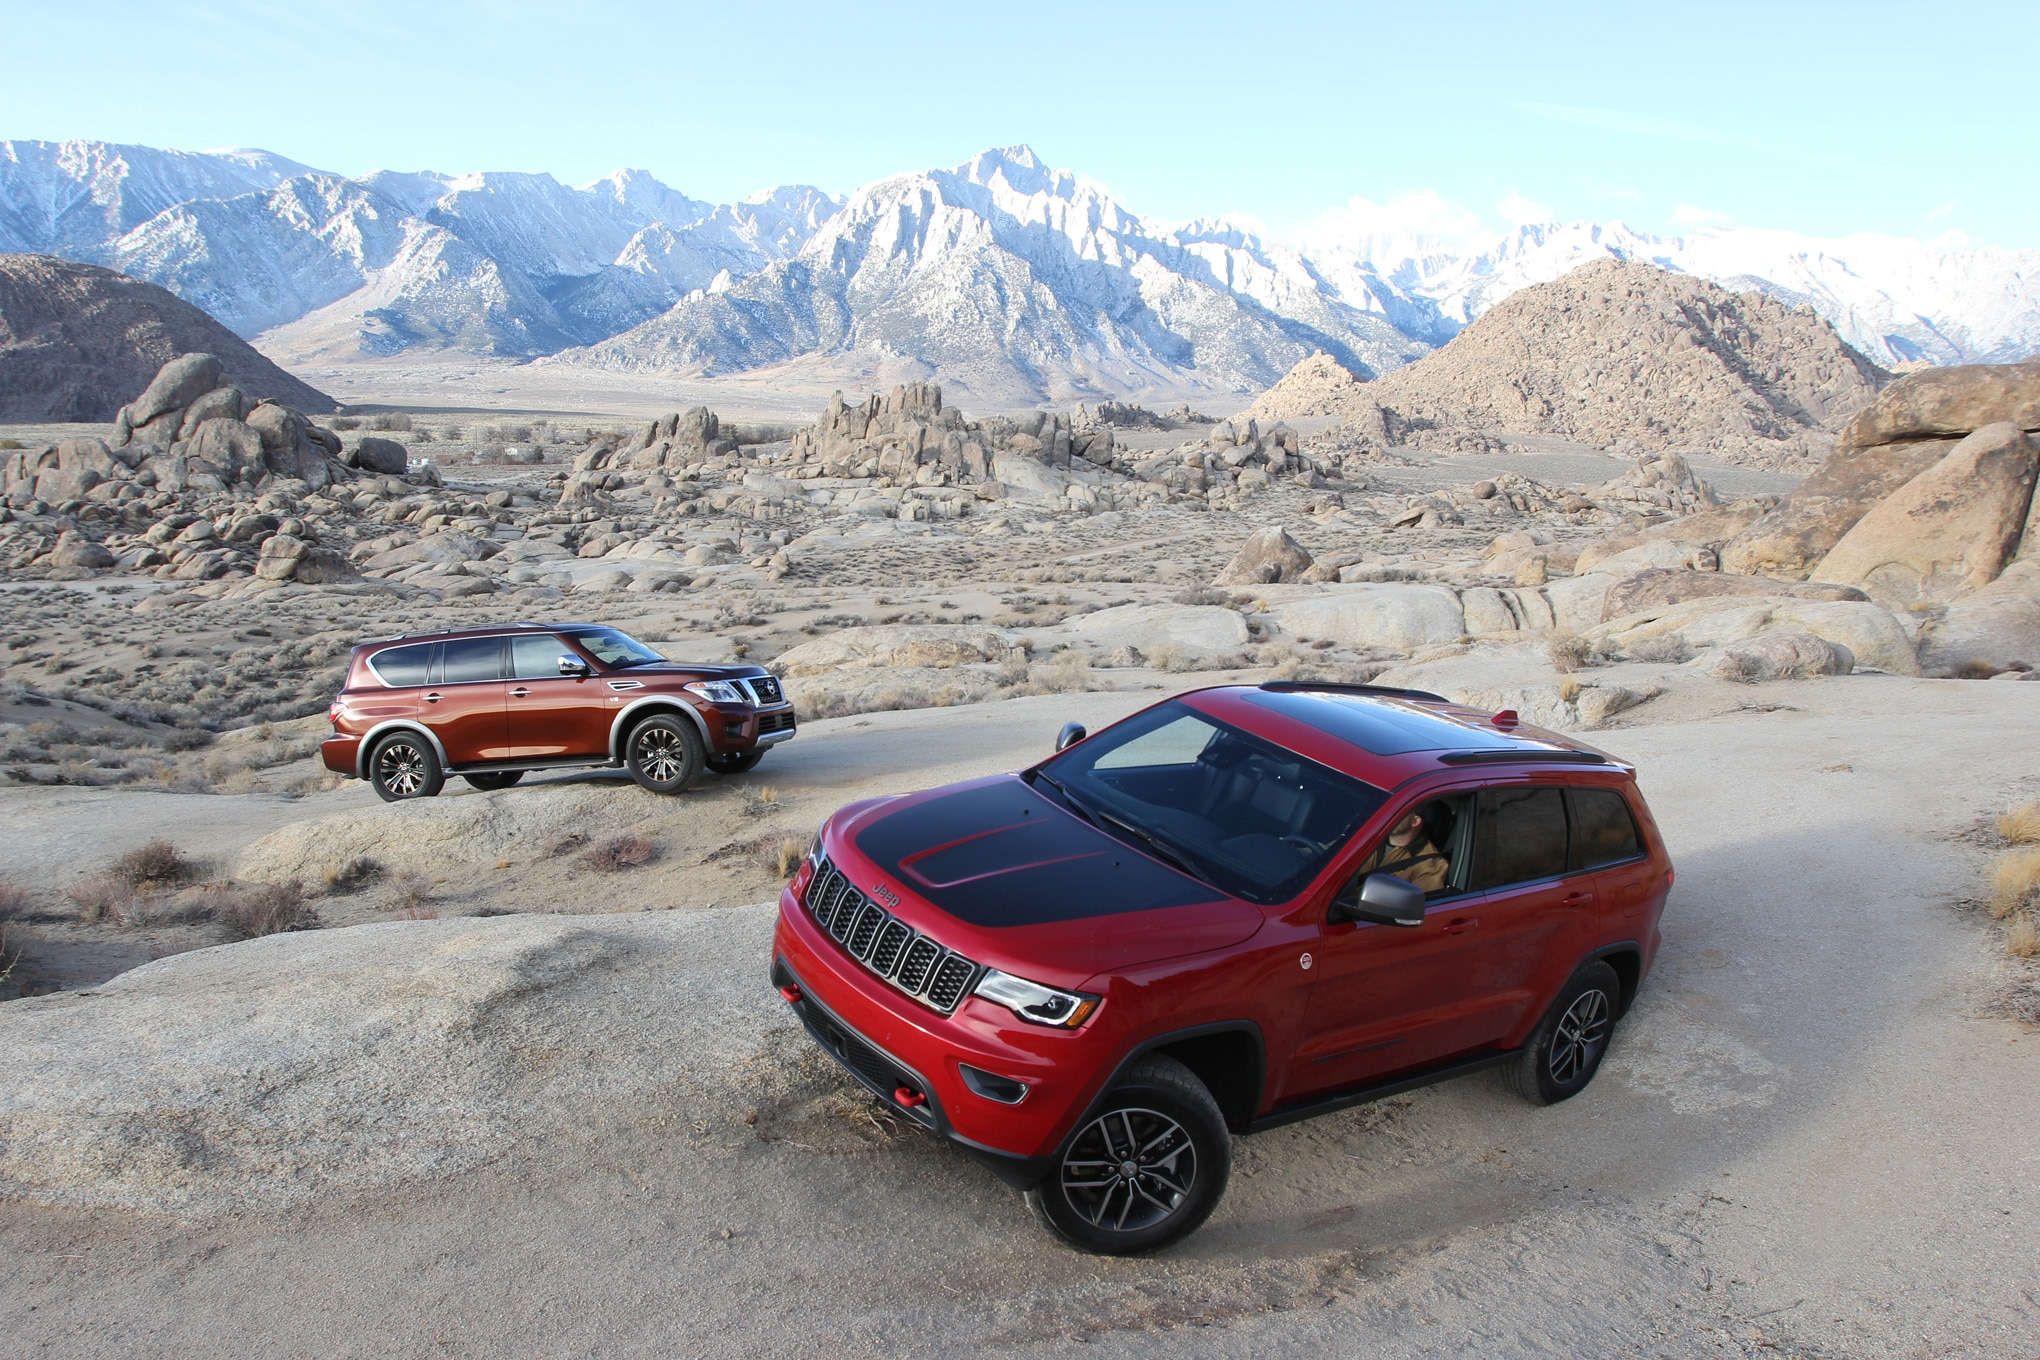 167 suv of the year